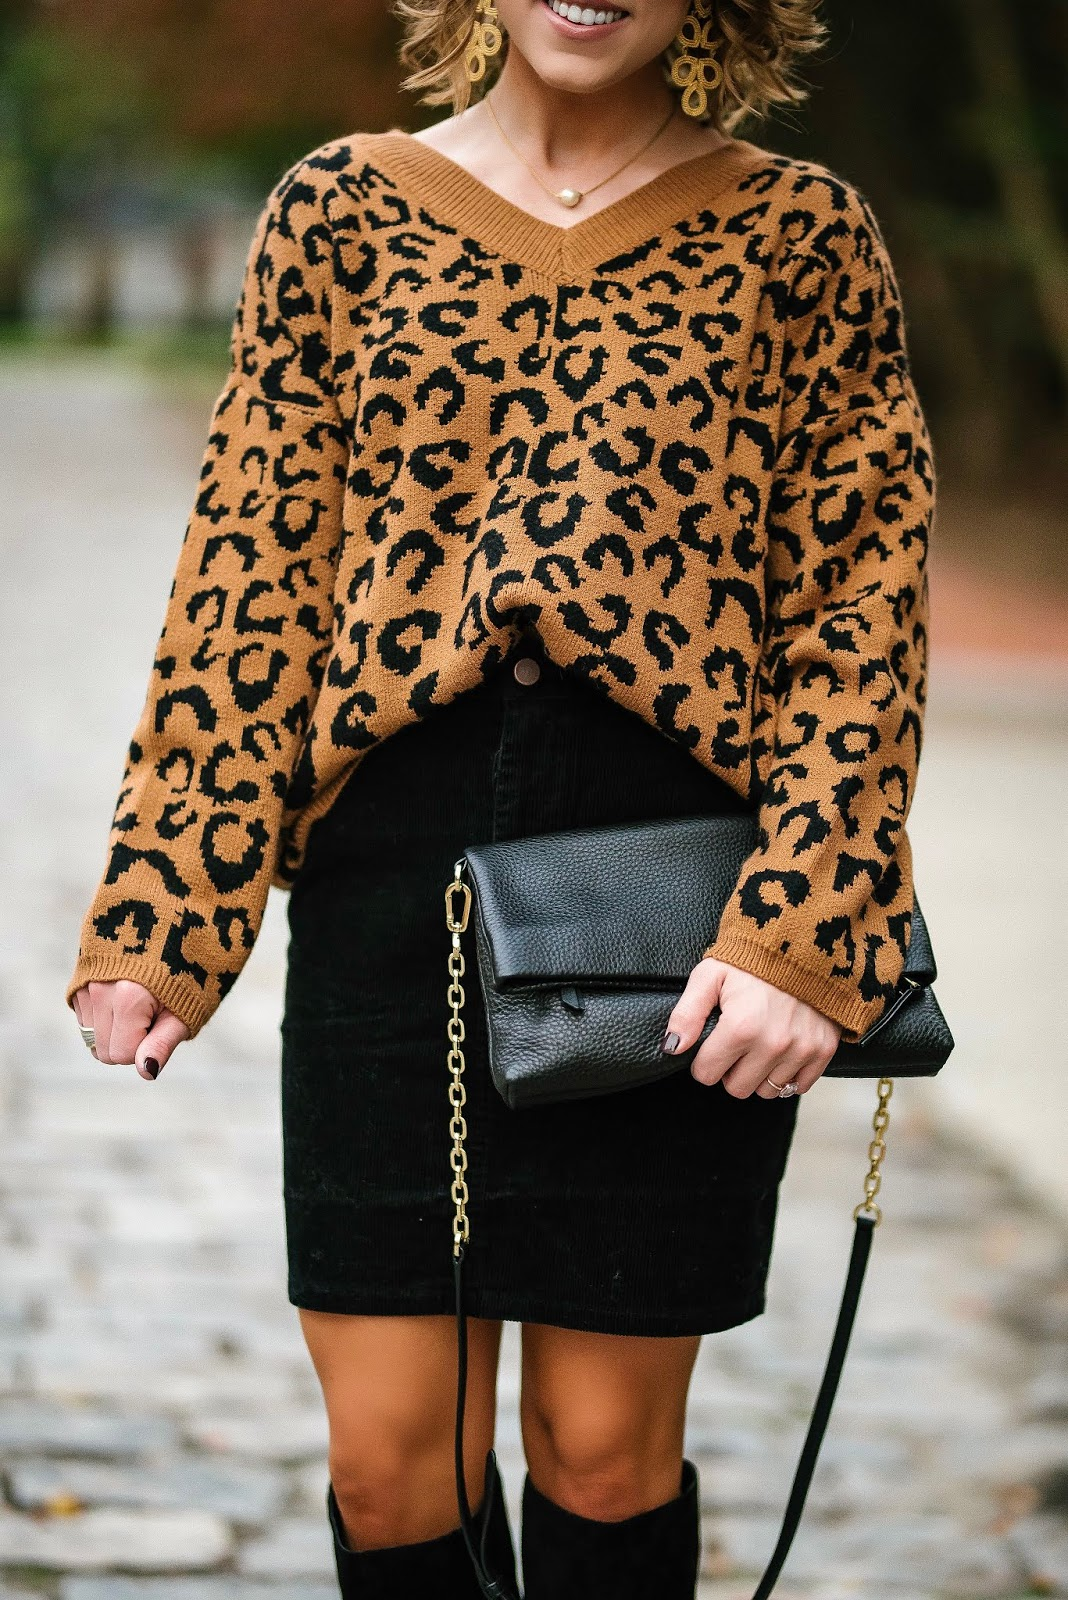 Under $50 Leopard Sweater Paired With Under $40 Black Cord Skirt - Something Delightful Blog